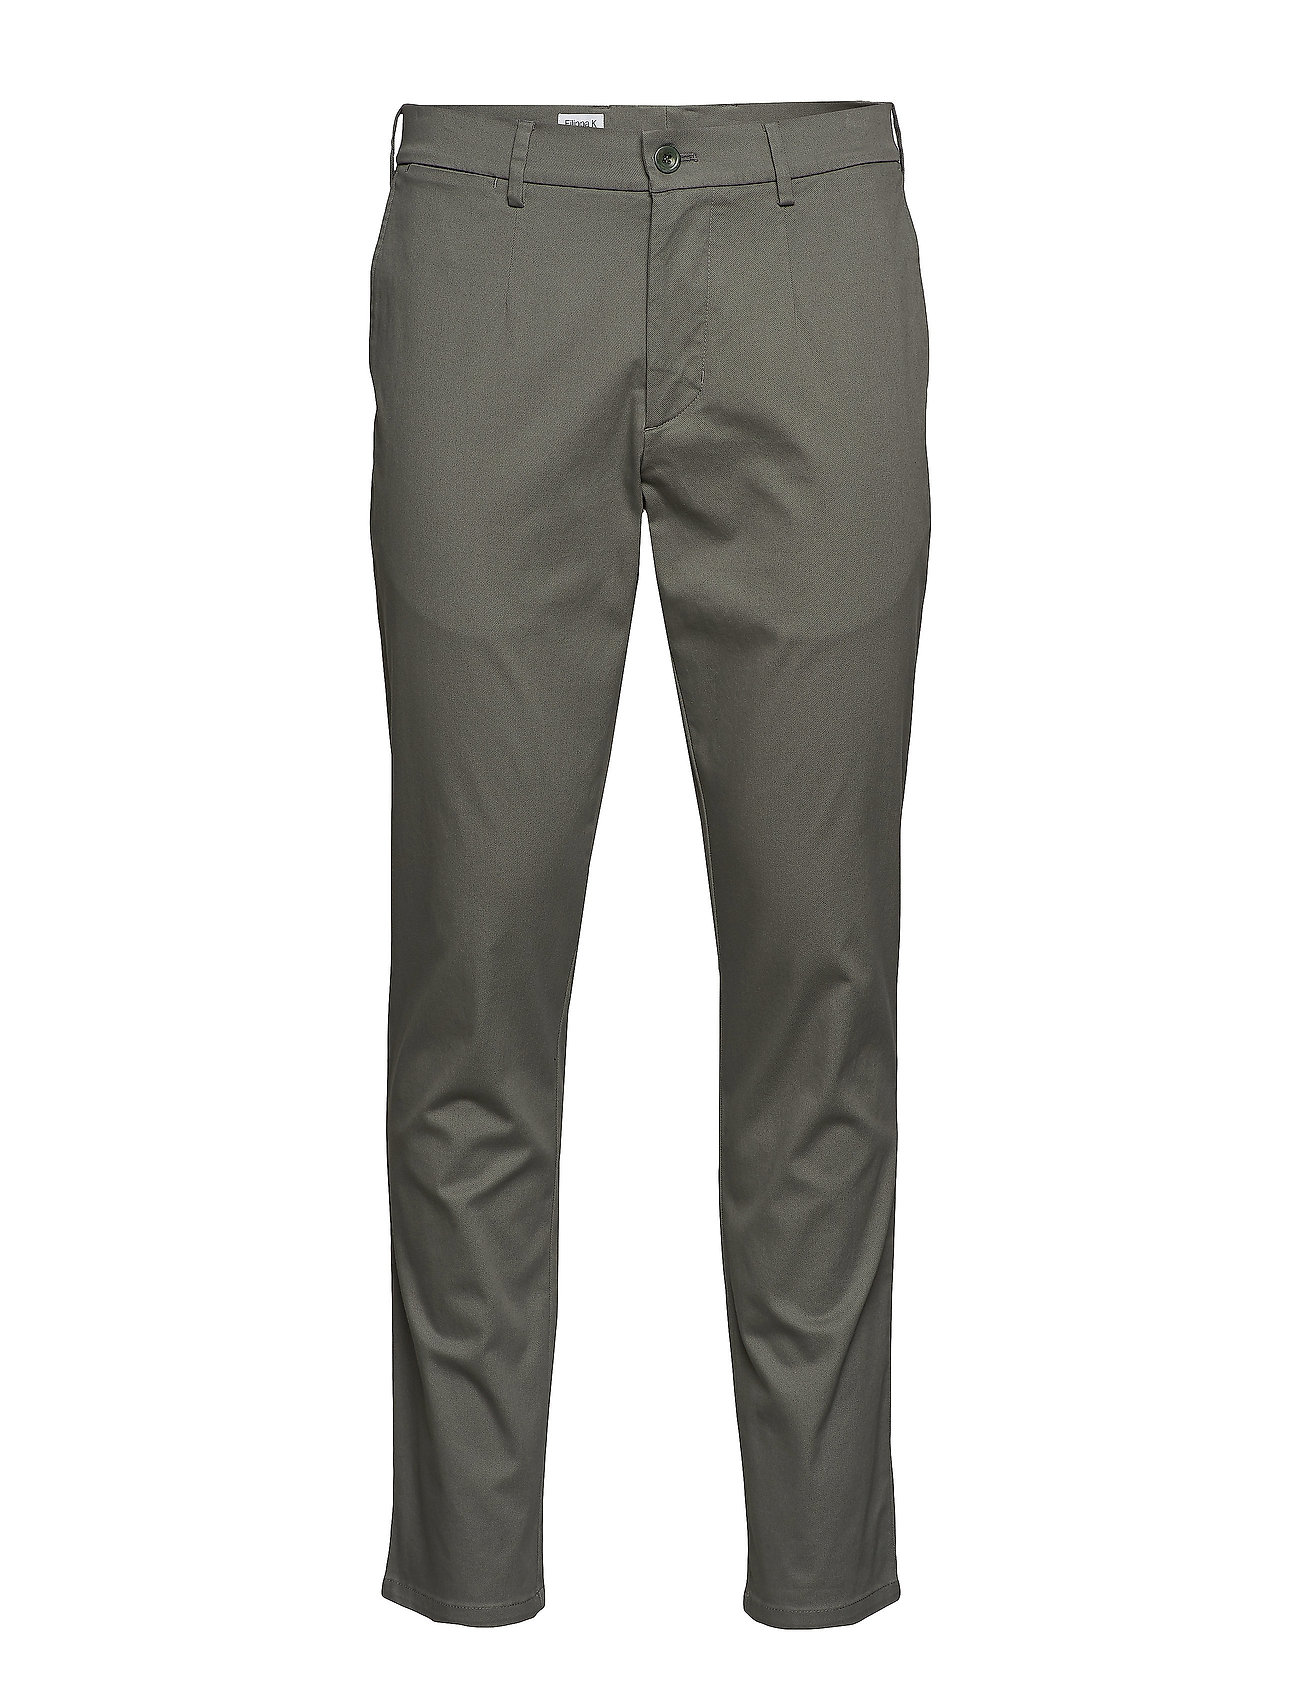 Filippa K M. Penn Cotton Twill Chino - PLATOONE